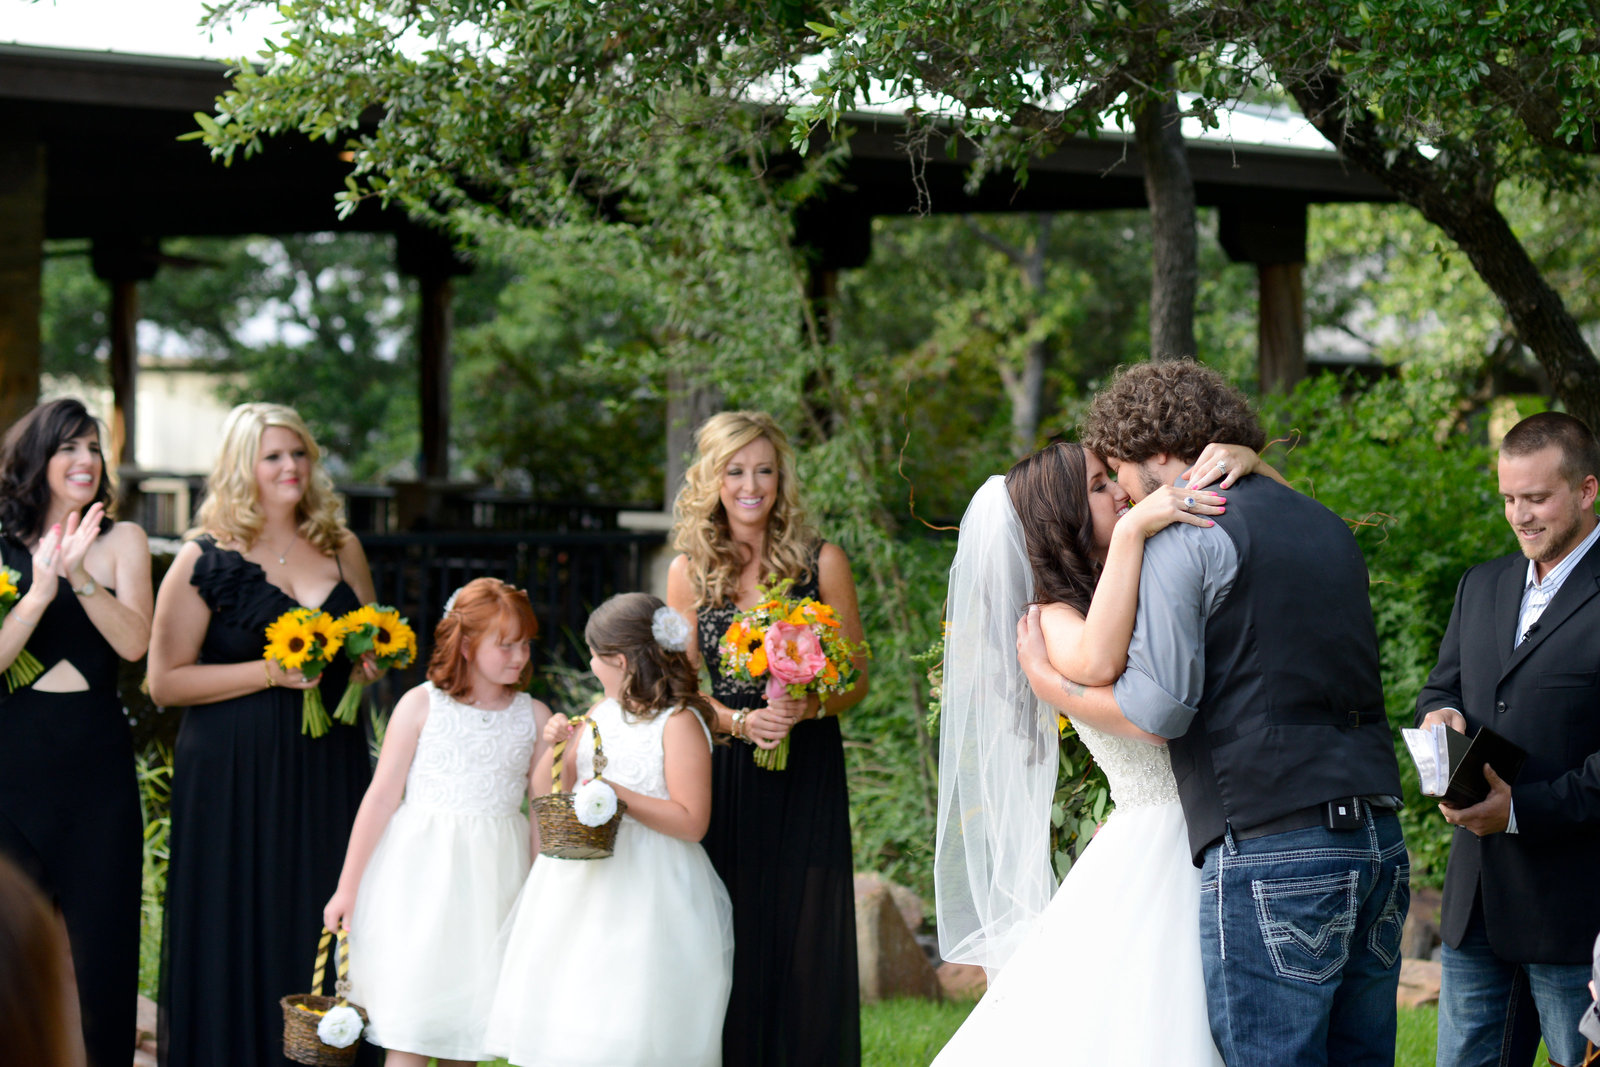 Husband and wife share first kiss on wedding day at Spicewood Vineyards